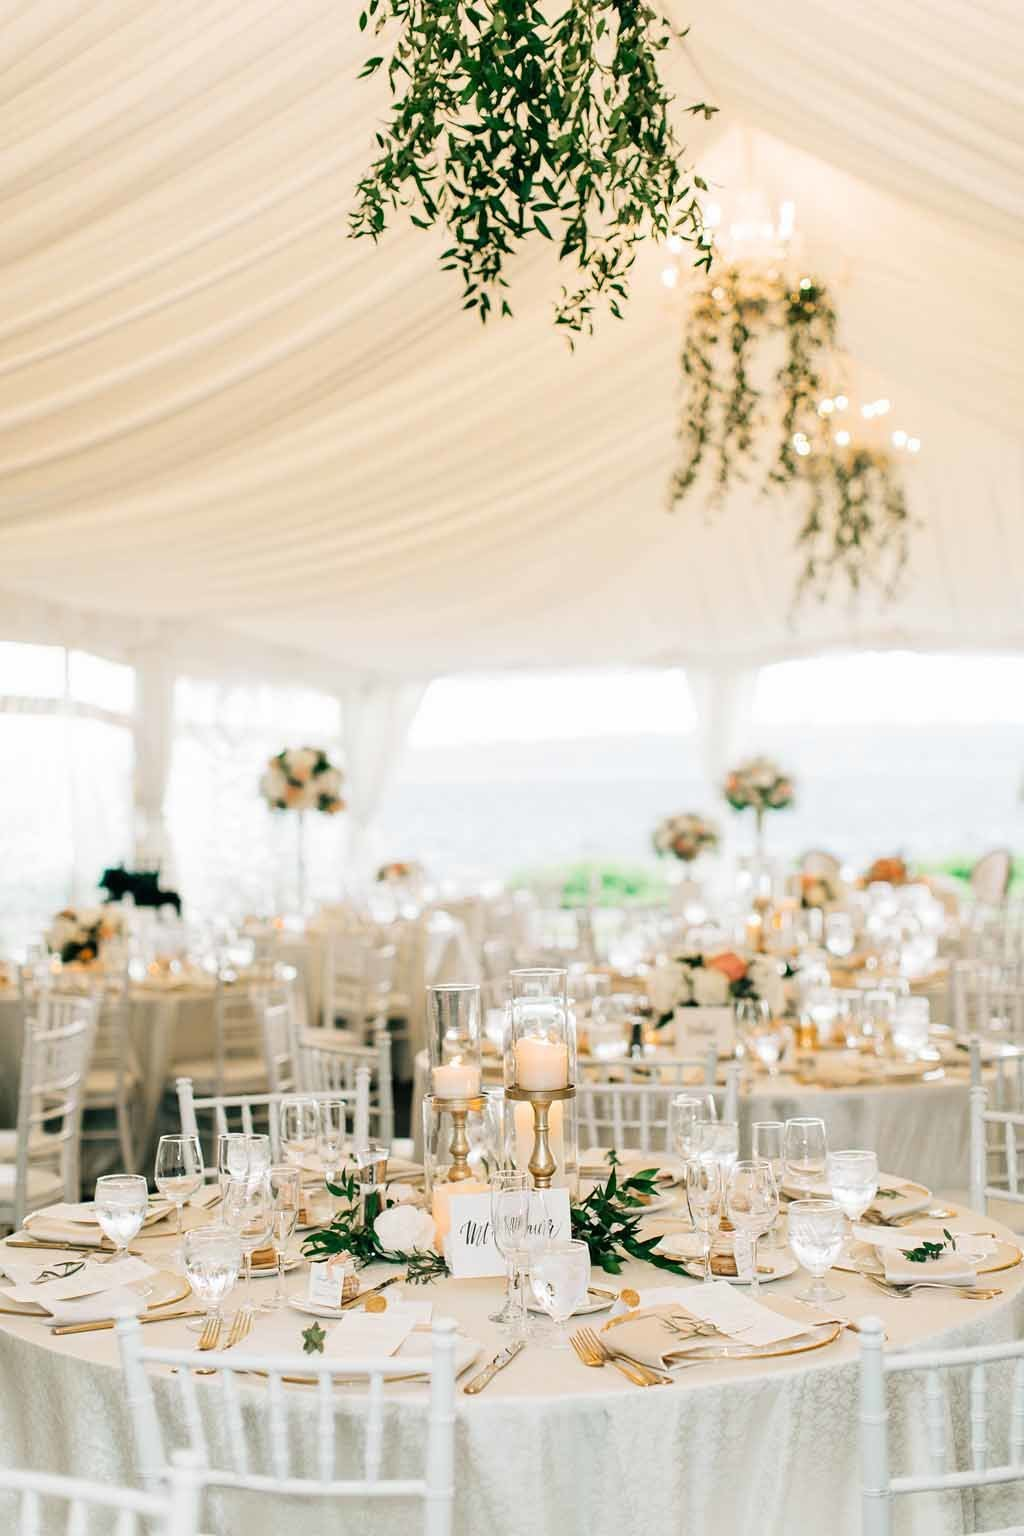 Elegant tent wedding reception at Woodmark Hotel with greenery chandeliers.